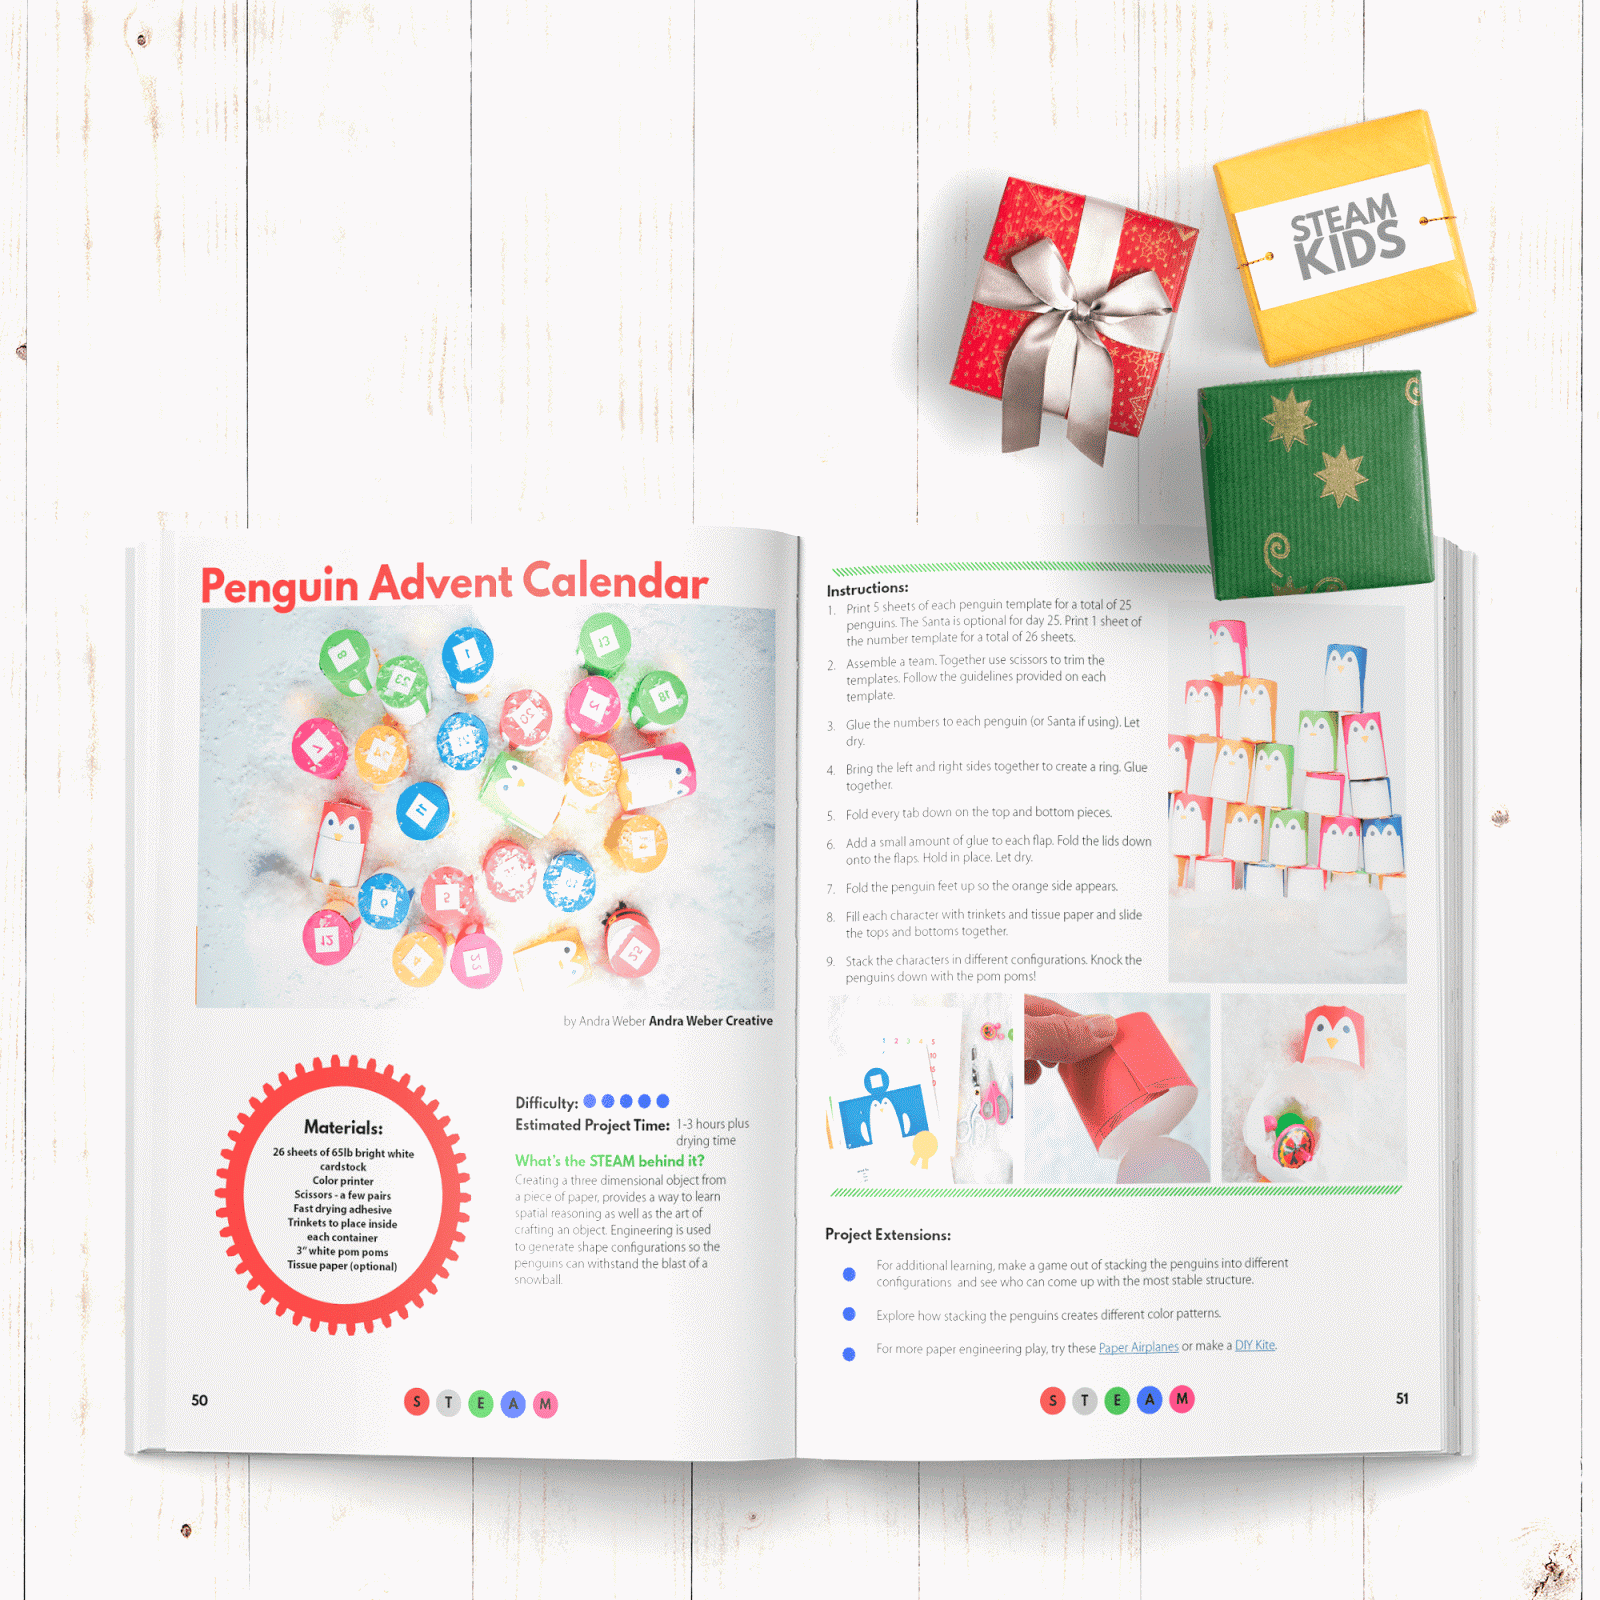 STEAM KIDS Christmas - the follow on book to the number #1 selling STEAM KIDS book which is inspiring our next generation of inventors, innovators and leaders. This Christmas ebook has over 25 days of holiday projects to try with your kids | you clever monkey